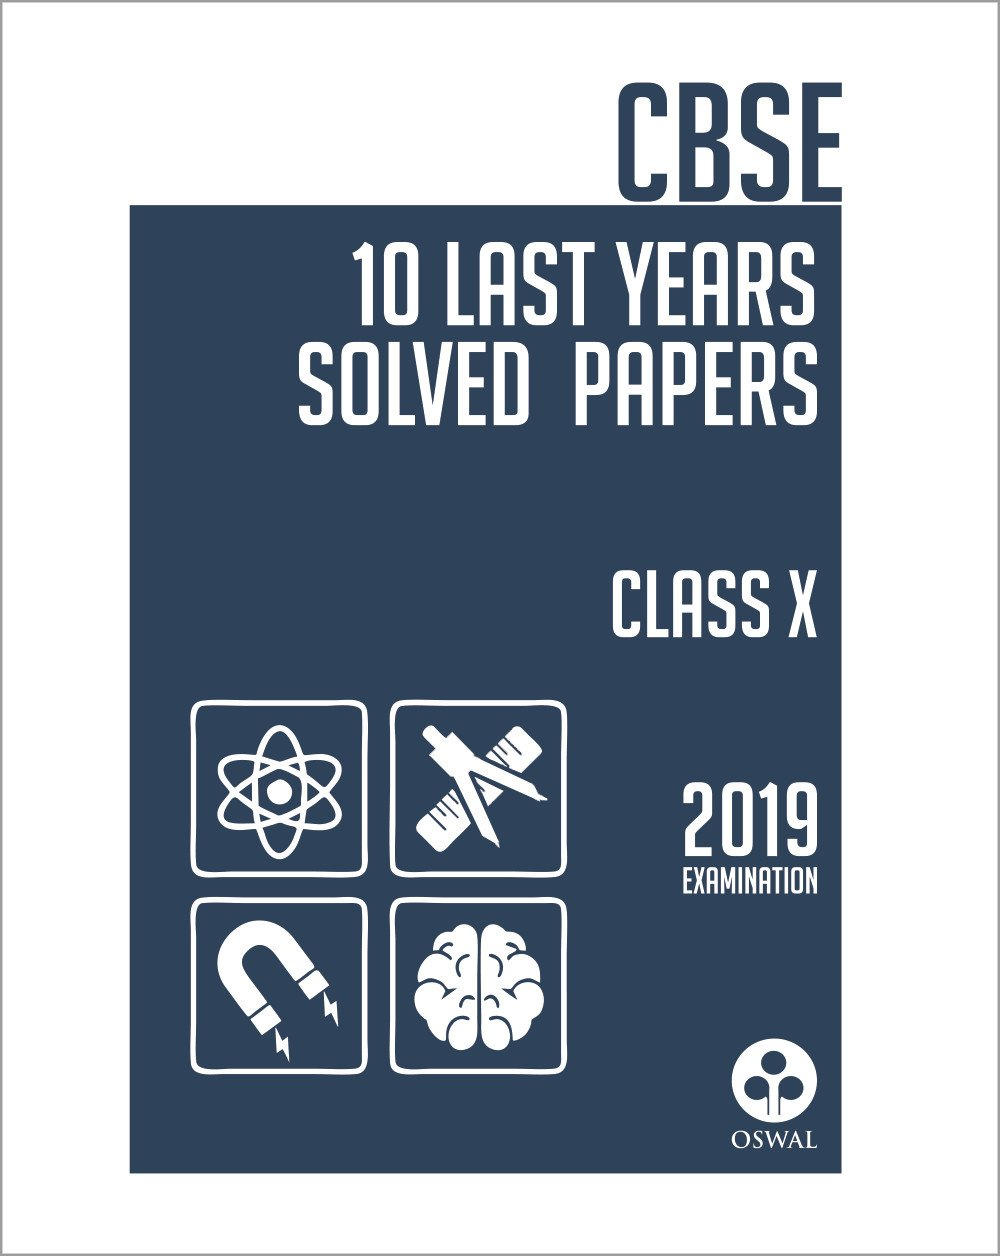 10 Last Years Solved Papers: CBSE Class 10 for 2019 Examination